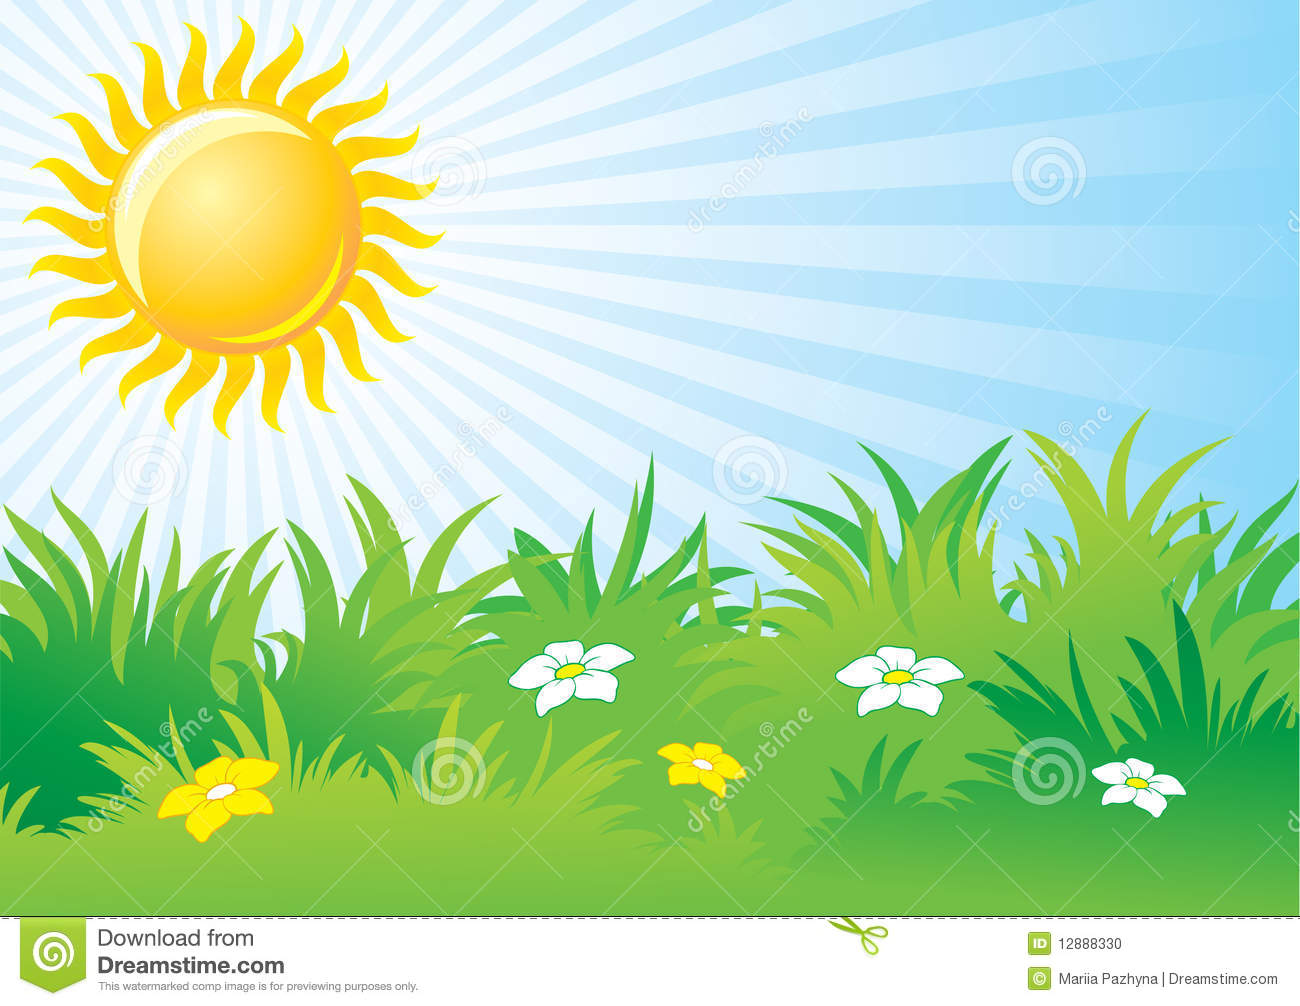 Cottage clipart bright sunny day Sunny Bright Sunny Day Clipart